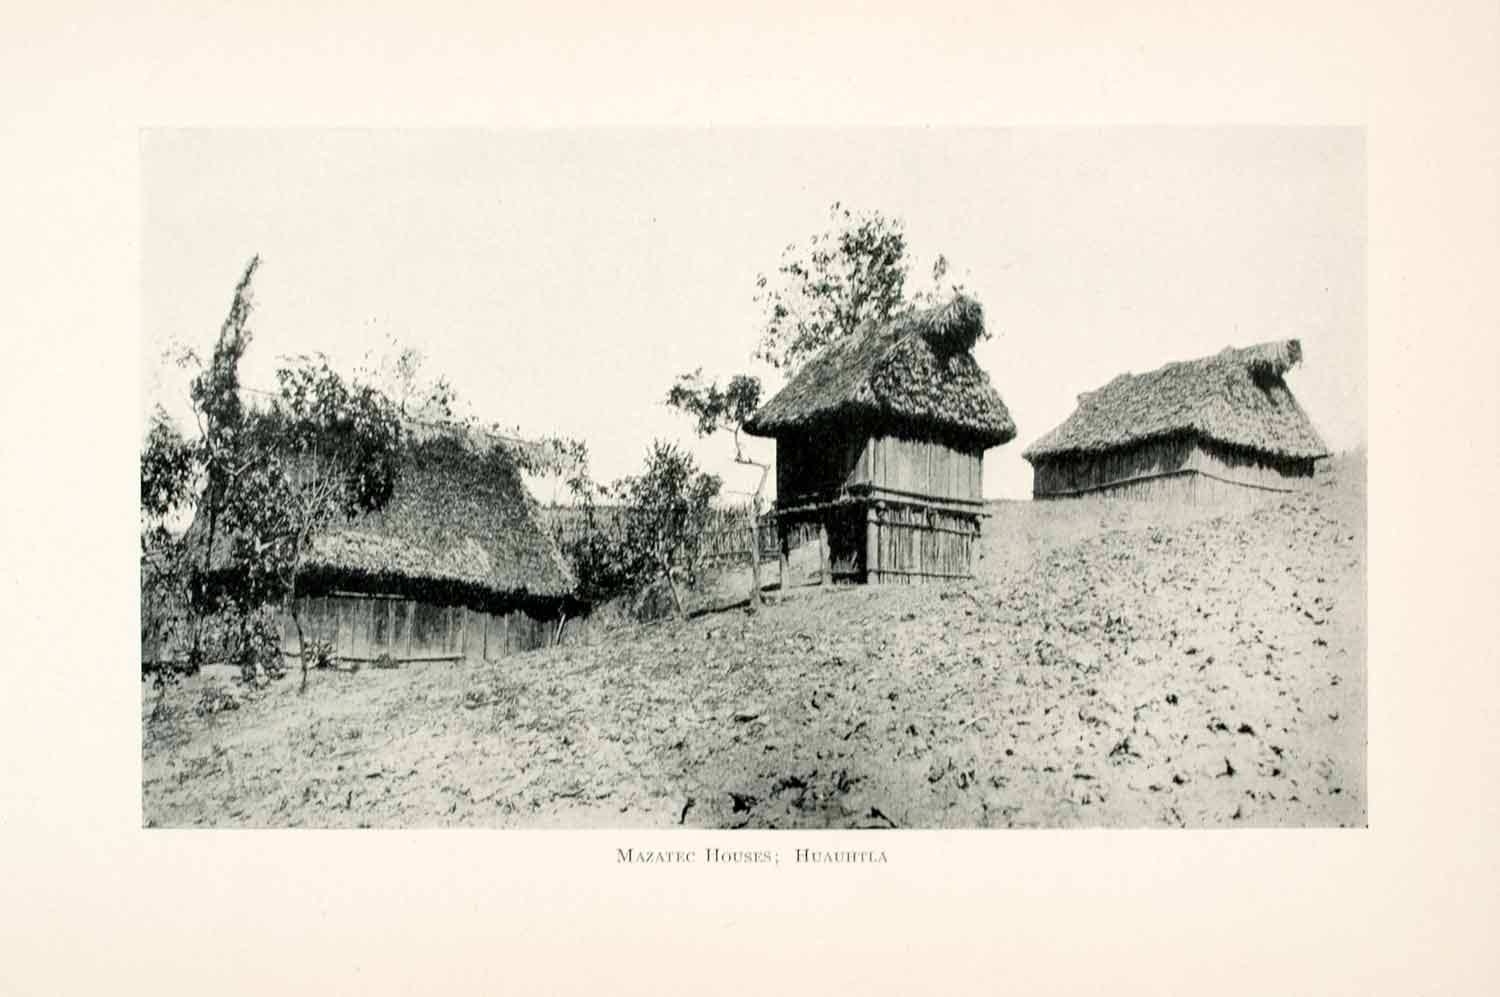 1908 Print mazatec Houses Huauhtla Mexico Cityscape Indians Thatched Roofs XGMA4